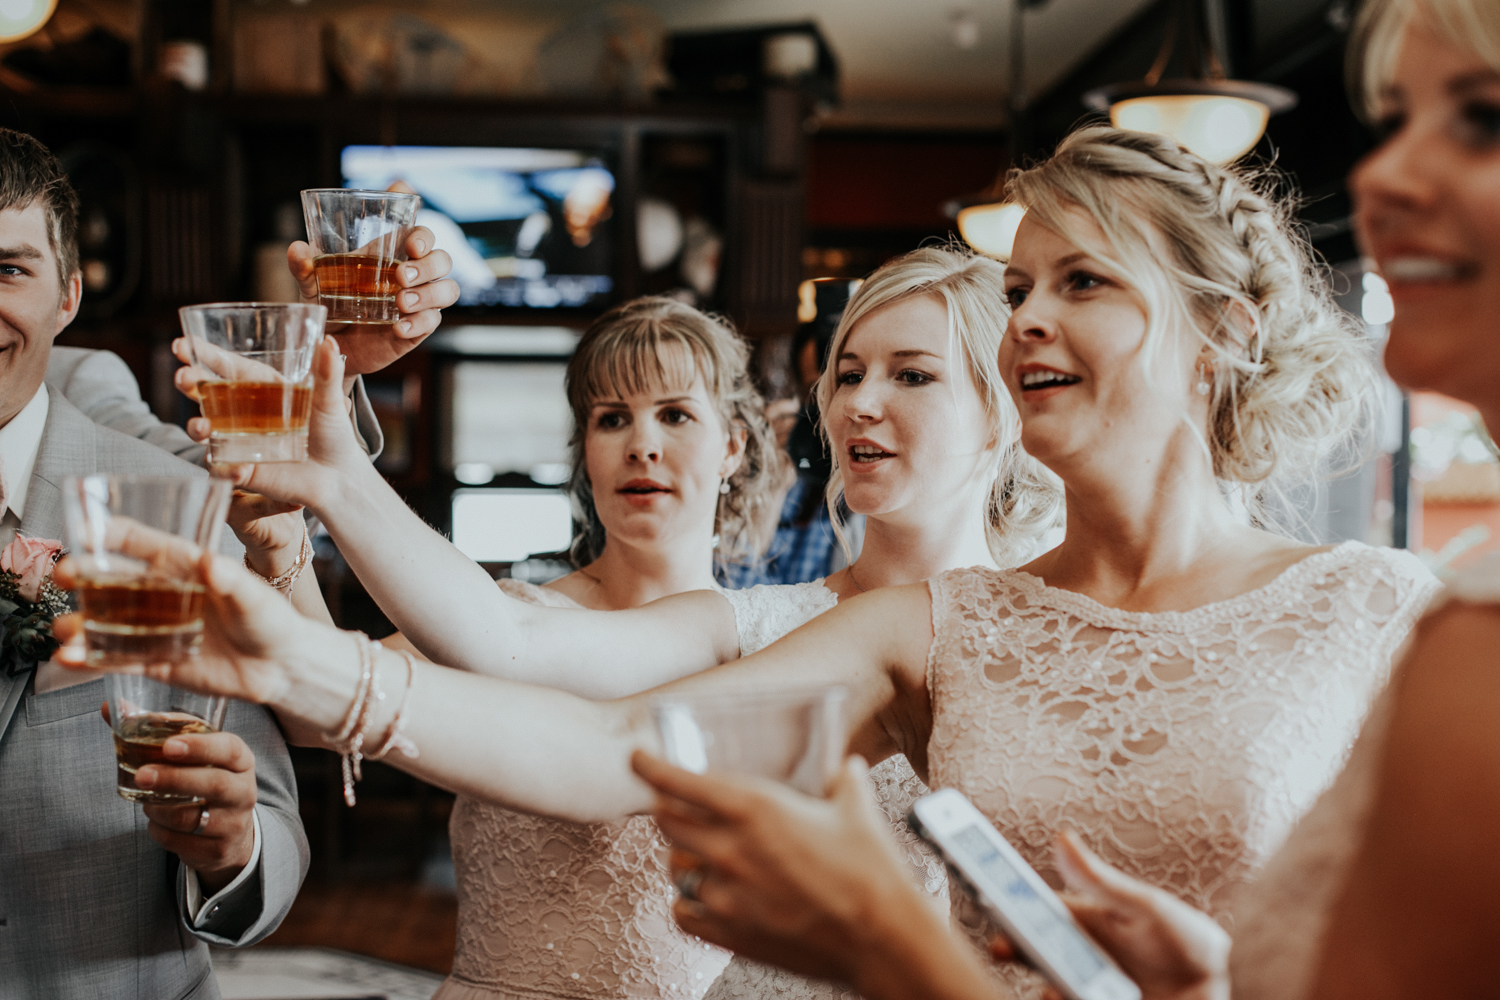 hudsons-tap-house-lethbridge-love-and-be-loved-photography-wedding-image-picture-photo-13.jpg